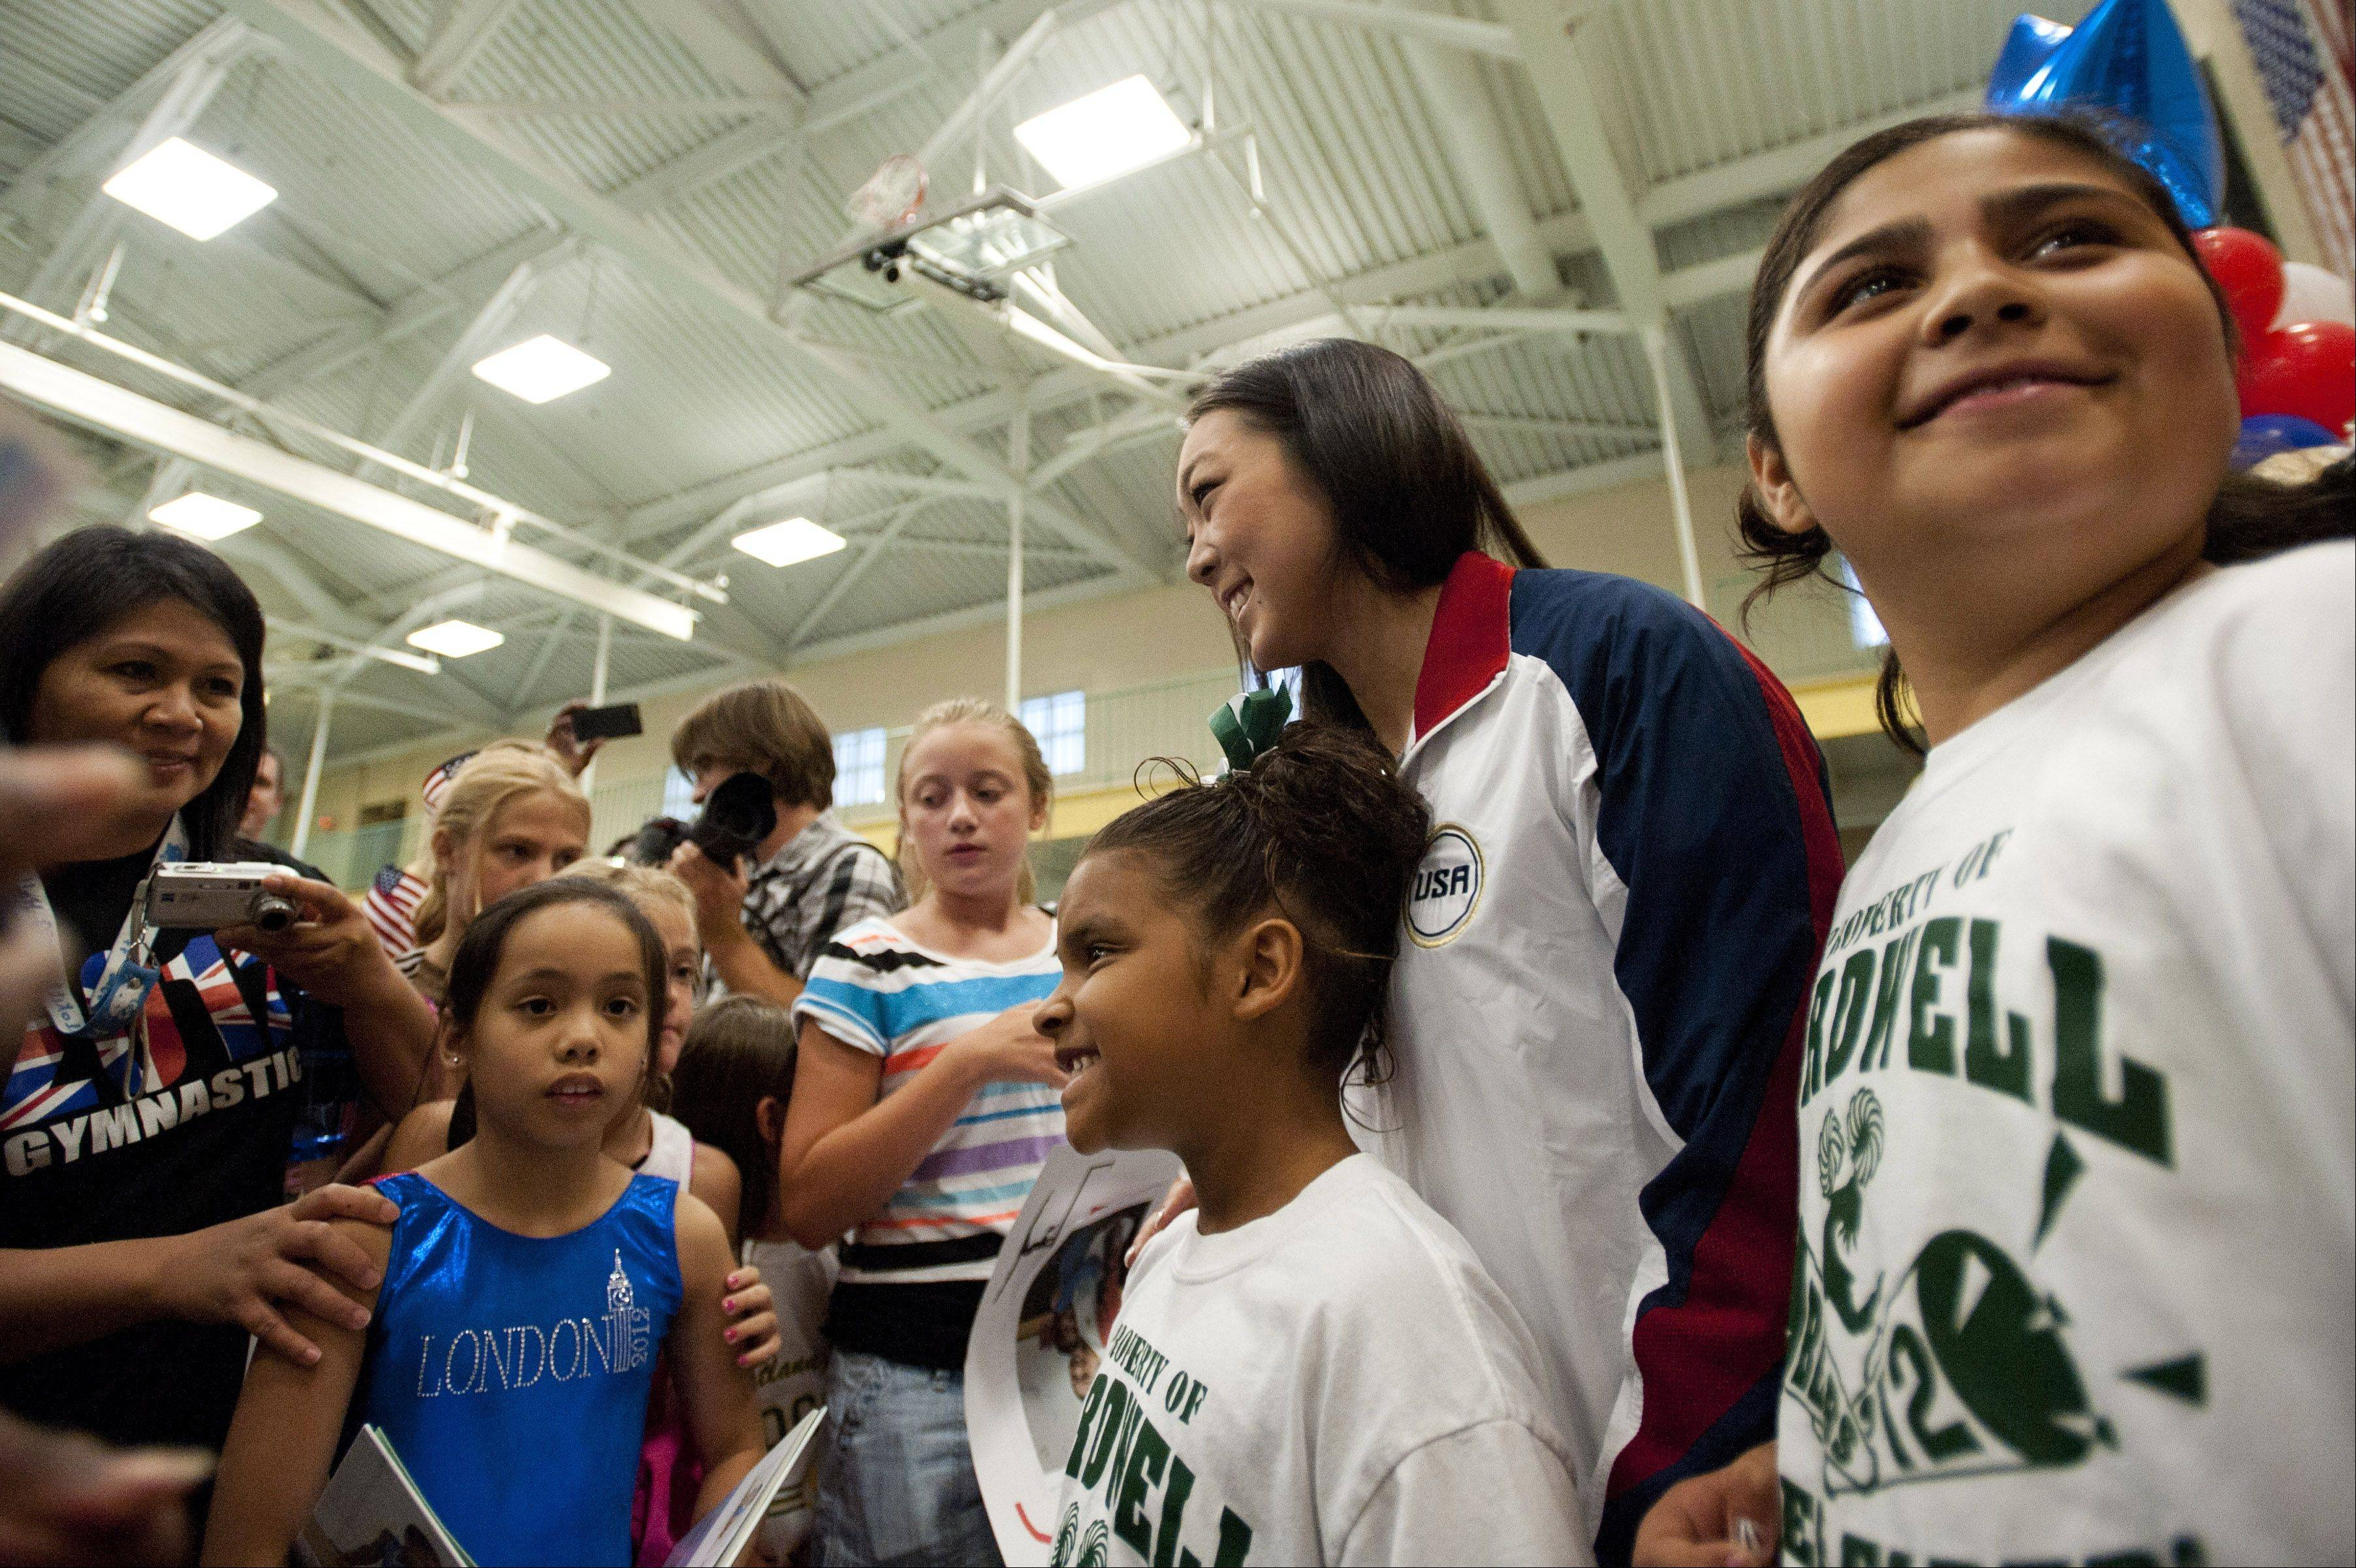 Fans mob Anna Li during a send-off celebration in Aurora on Monday. At 23, the Aurora native is one of few post-collegiate gymnasts to make it to the Olympics.